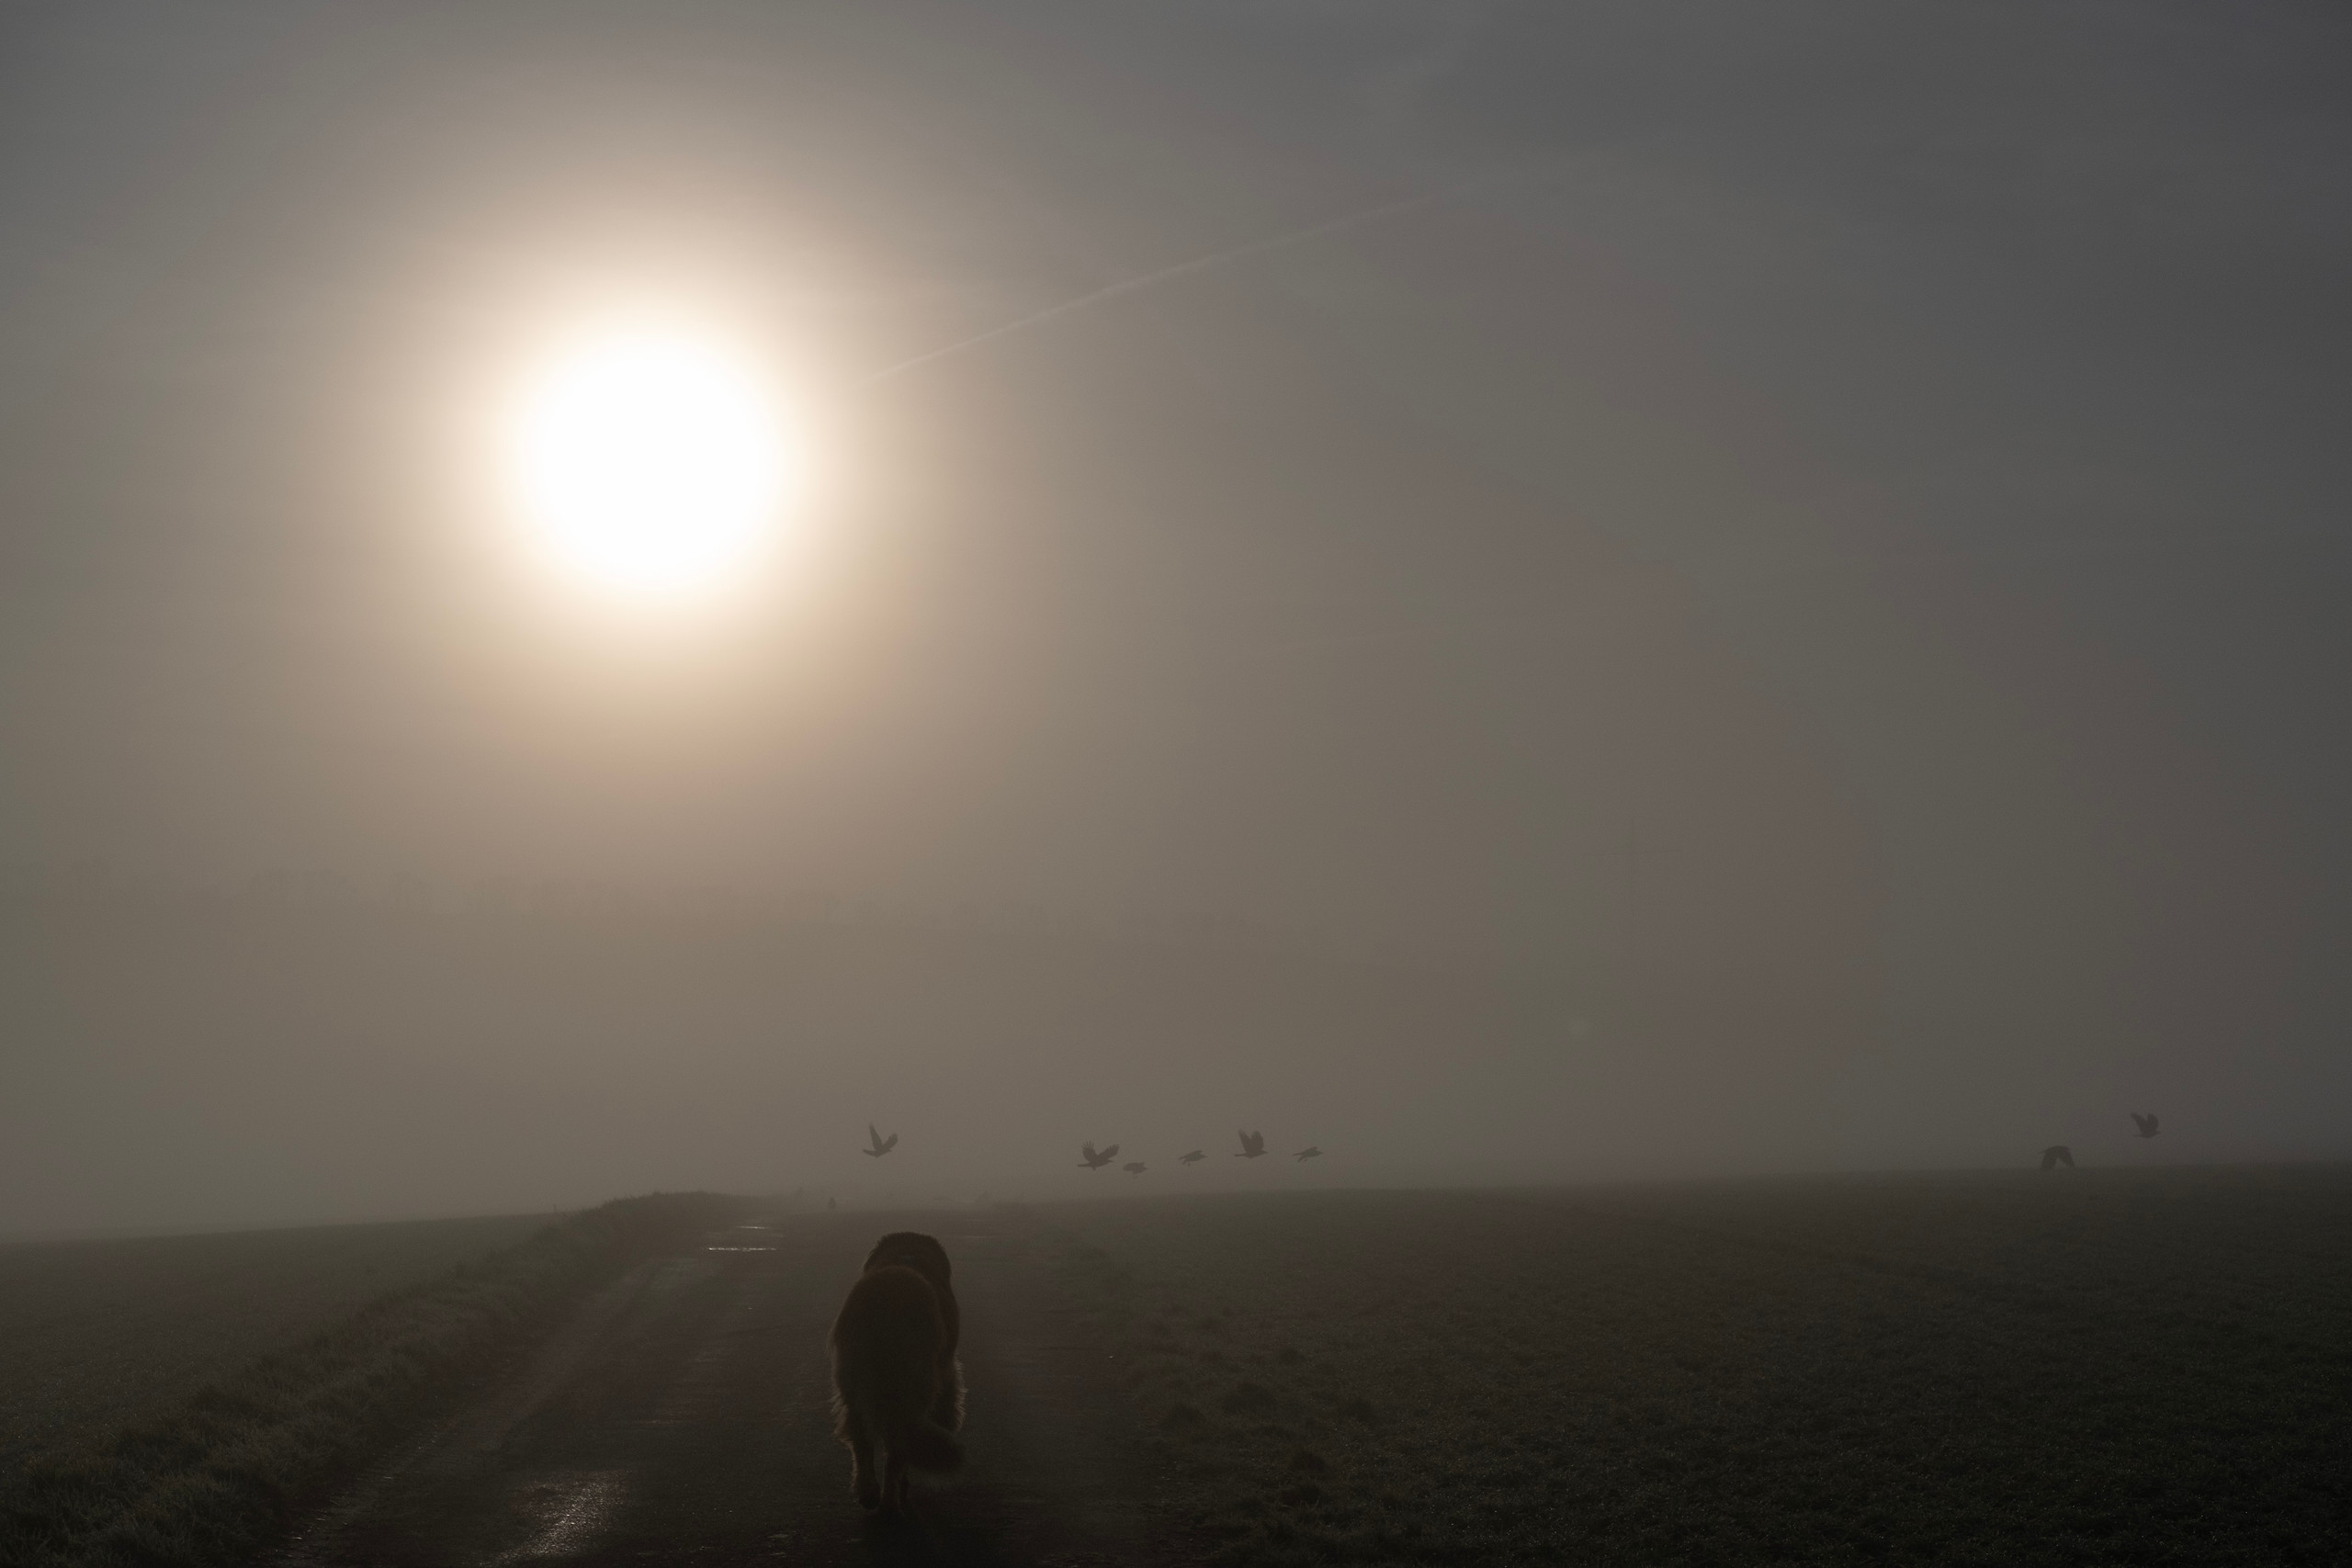 A large dog running towards a flock of crows taking flight lit from behind by the sun behind thick fog